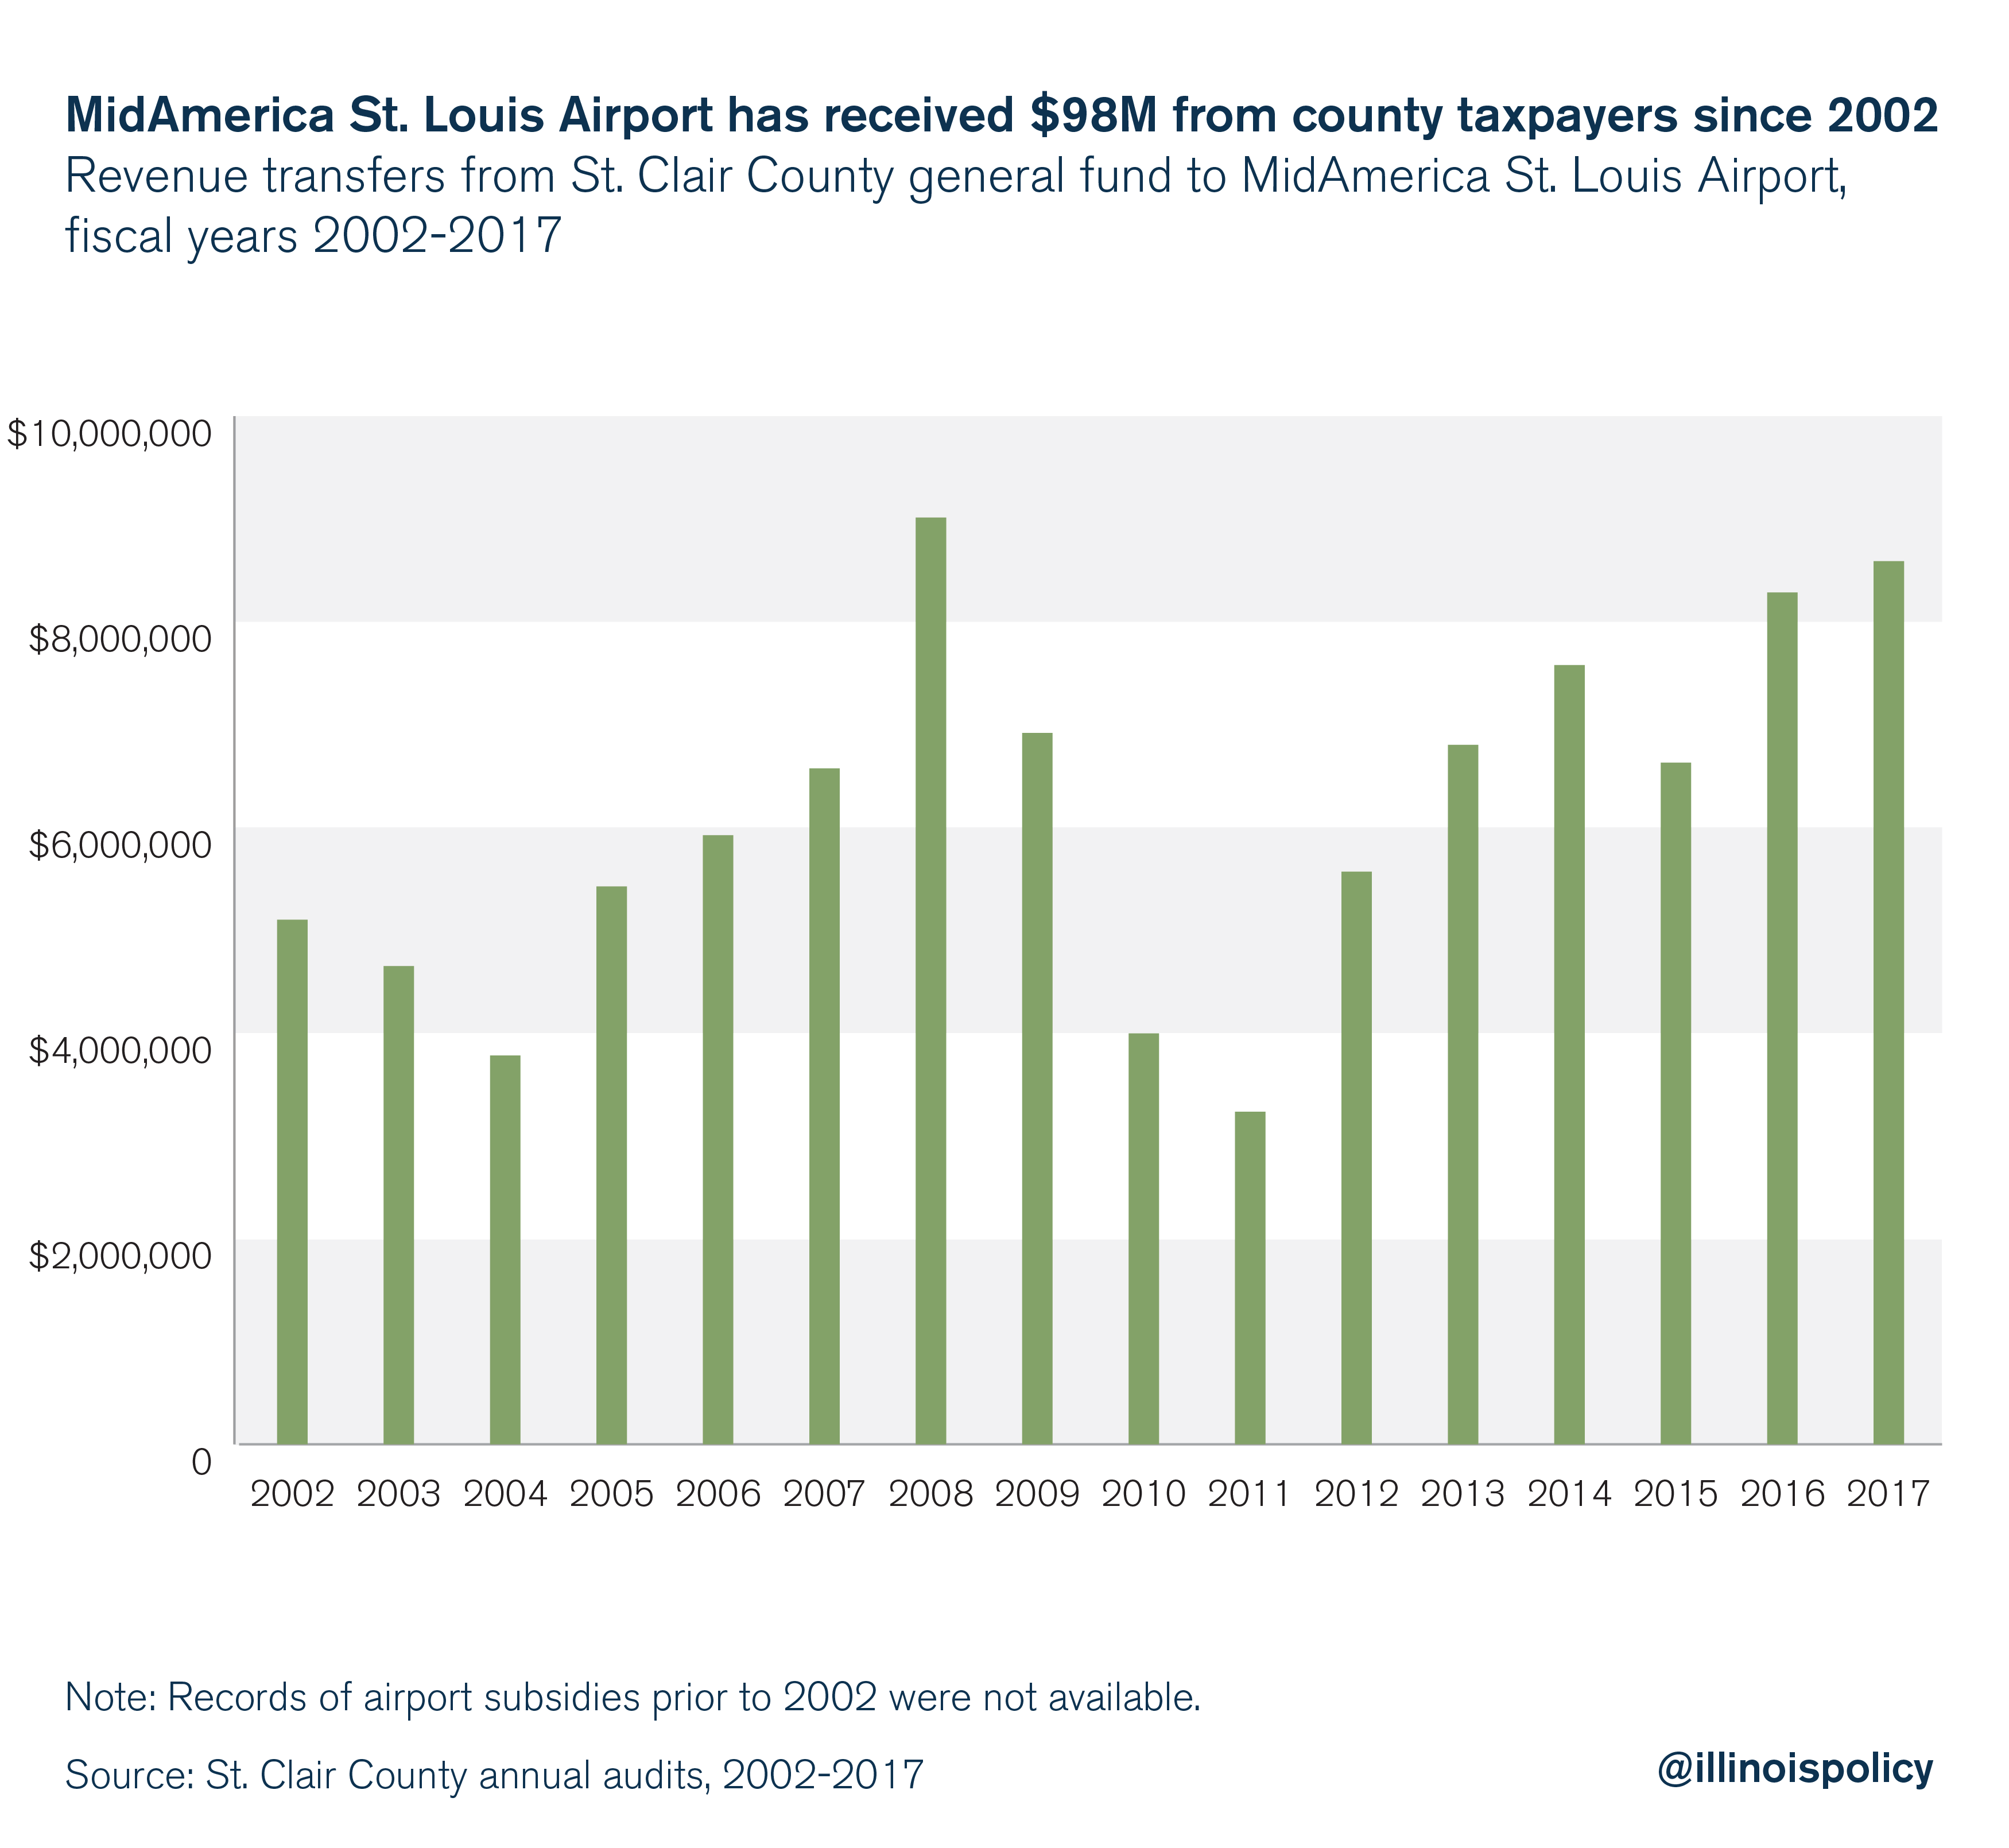 MidAmerica St. Louis Airport has received $98M from county taxpayers since 2002